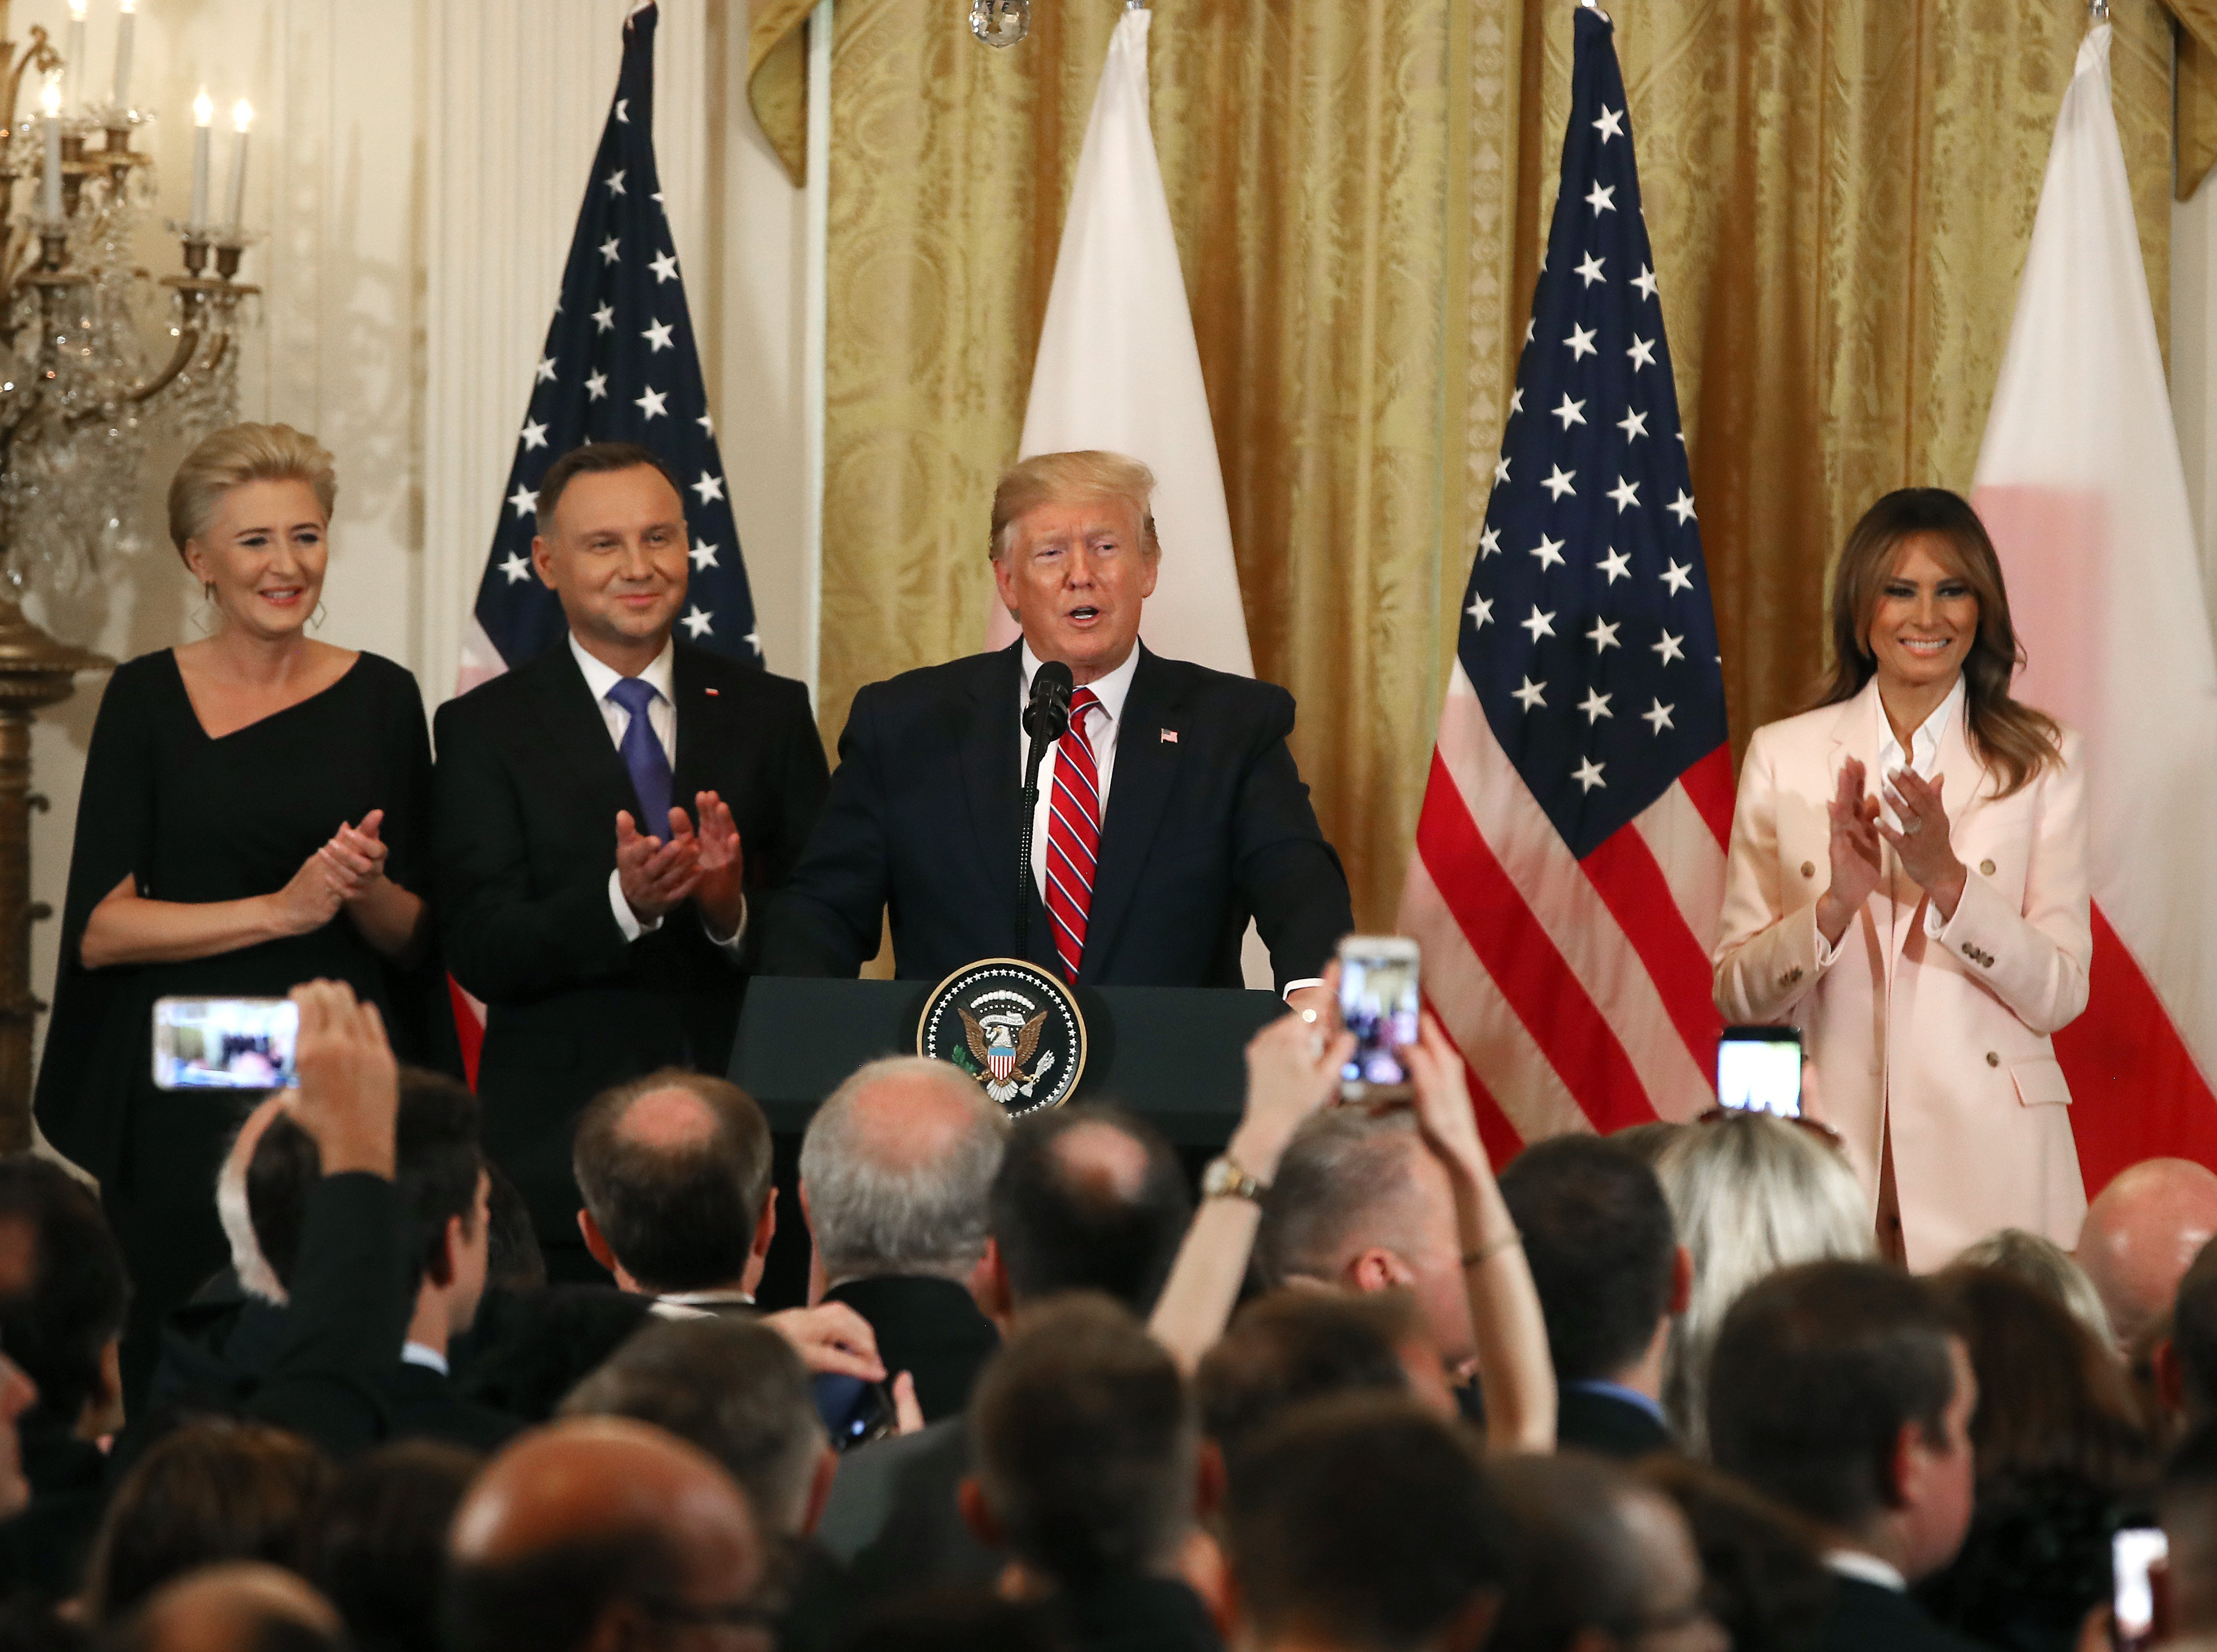 Donald Trump and Melania Trump with the President of Poland Andrzej Duda and his wife Agata Kornhauser-Duda at the White House | Photo: Getty Images